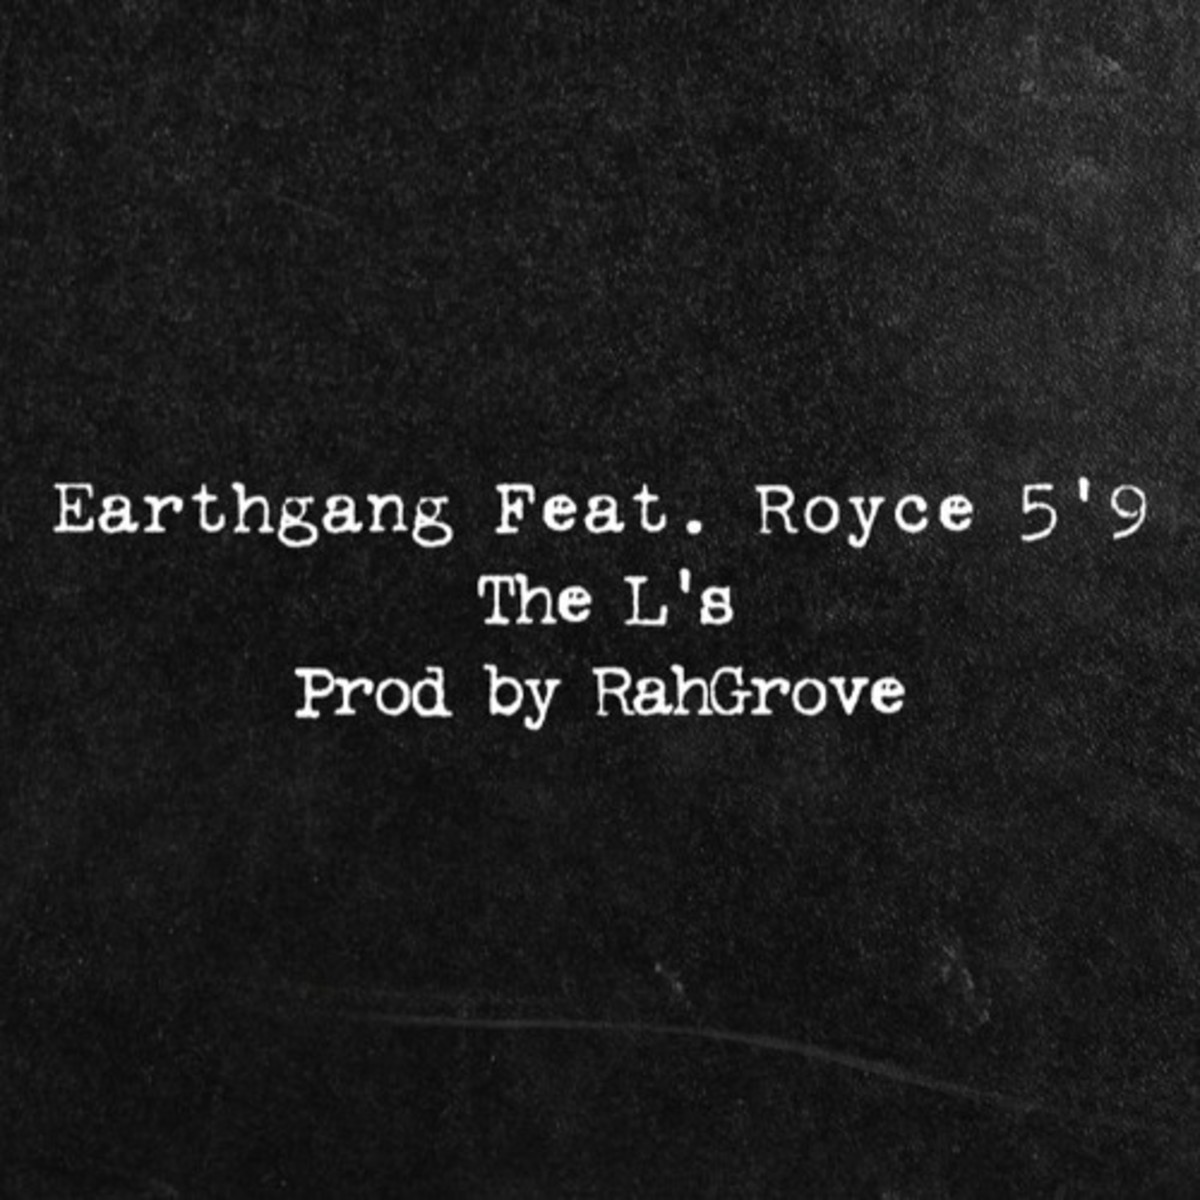 earthgang-the-ls.jpg